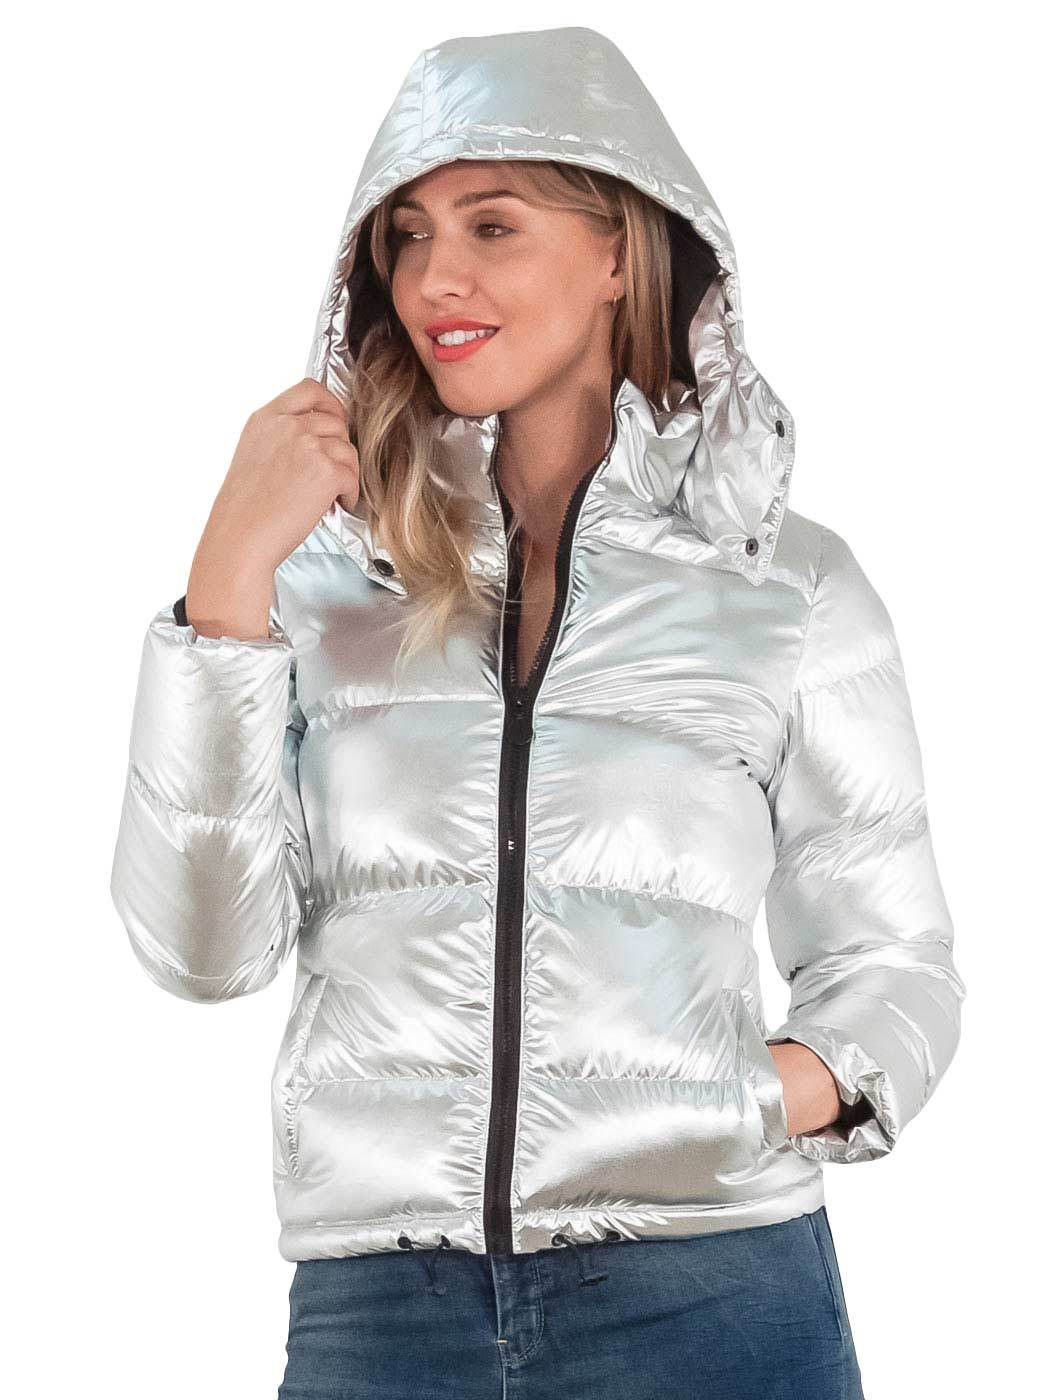 Details about Womens Puffer jacket Metallic Bomber Hooded Padded Winter  Ladies Parka Coat 8 16 6e91619ef7